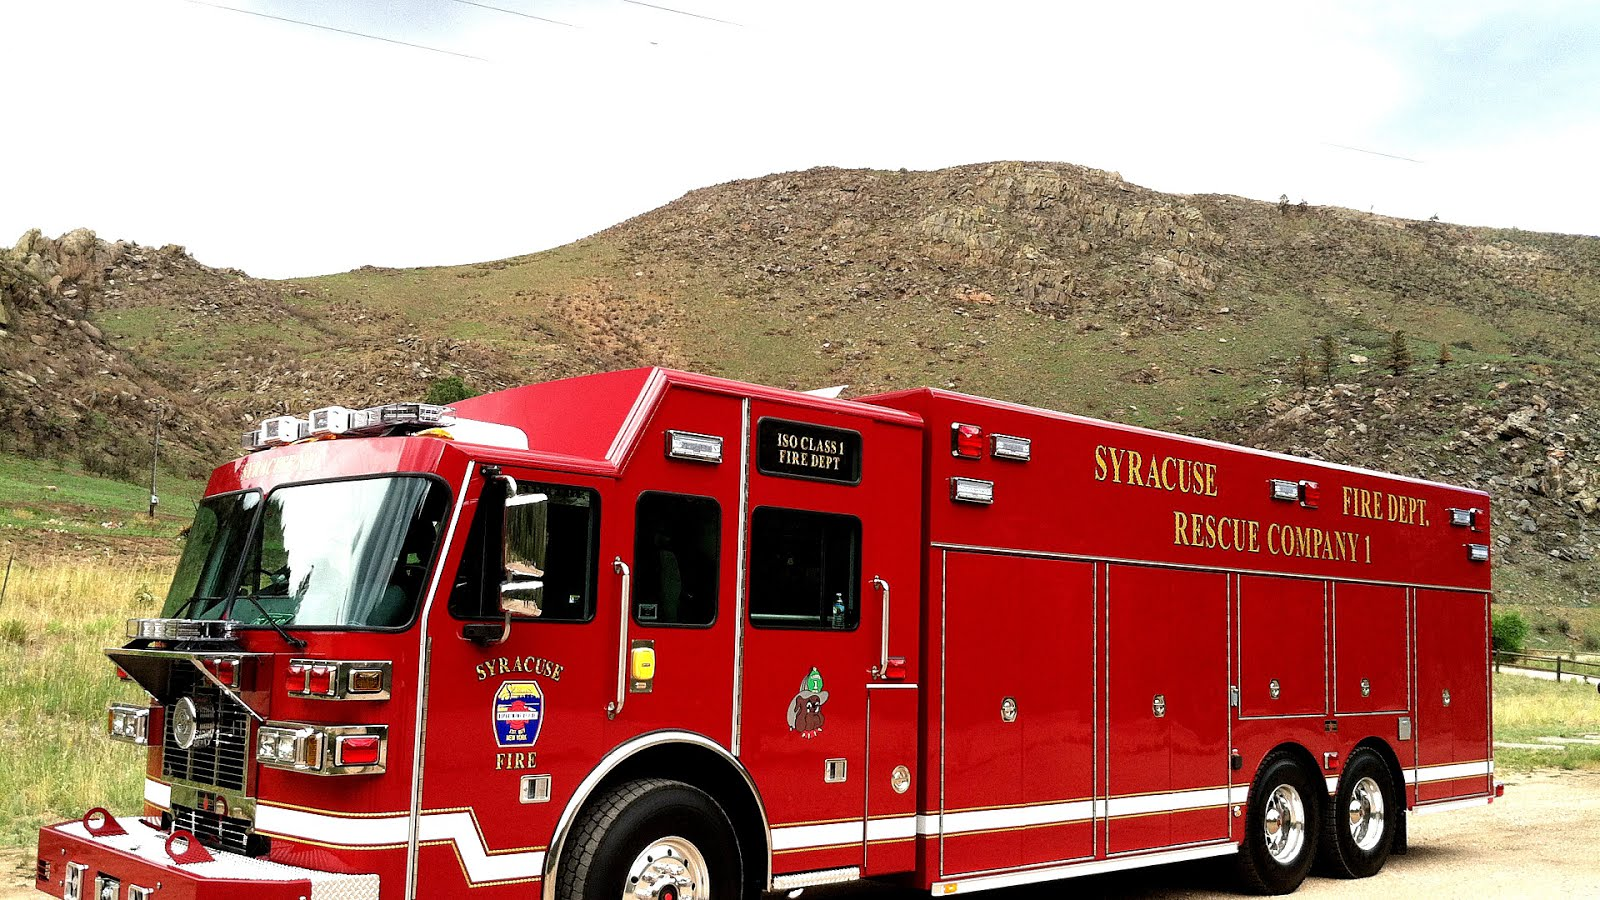 Fire Department Command Vehicles For Sale